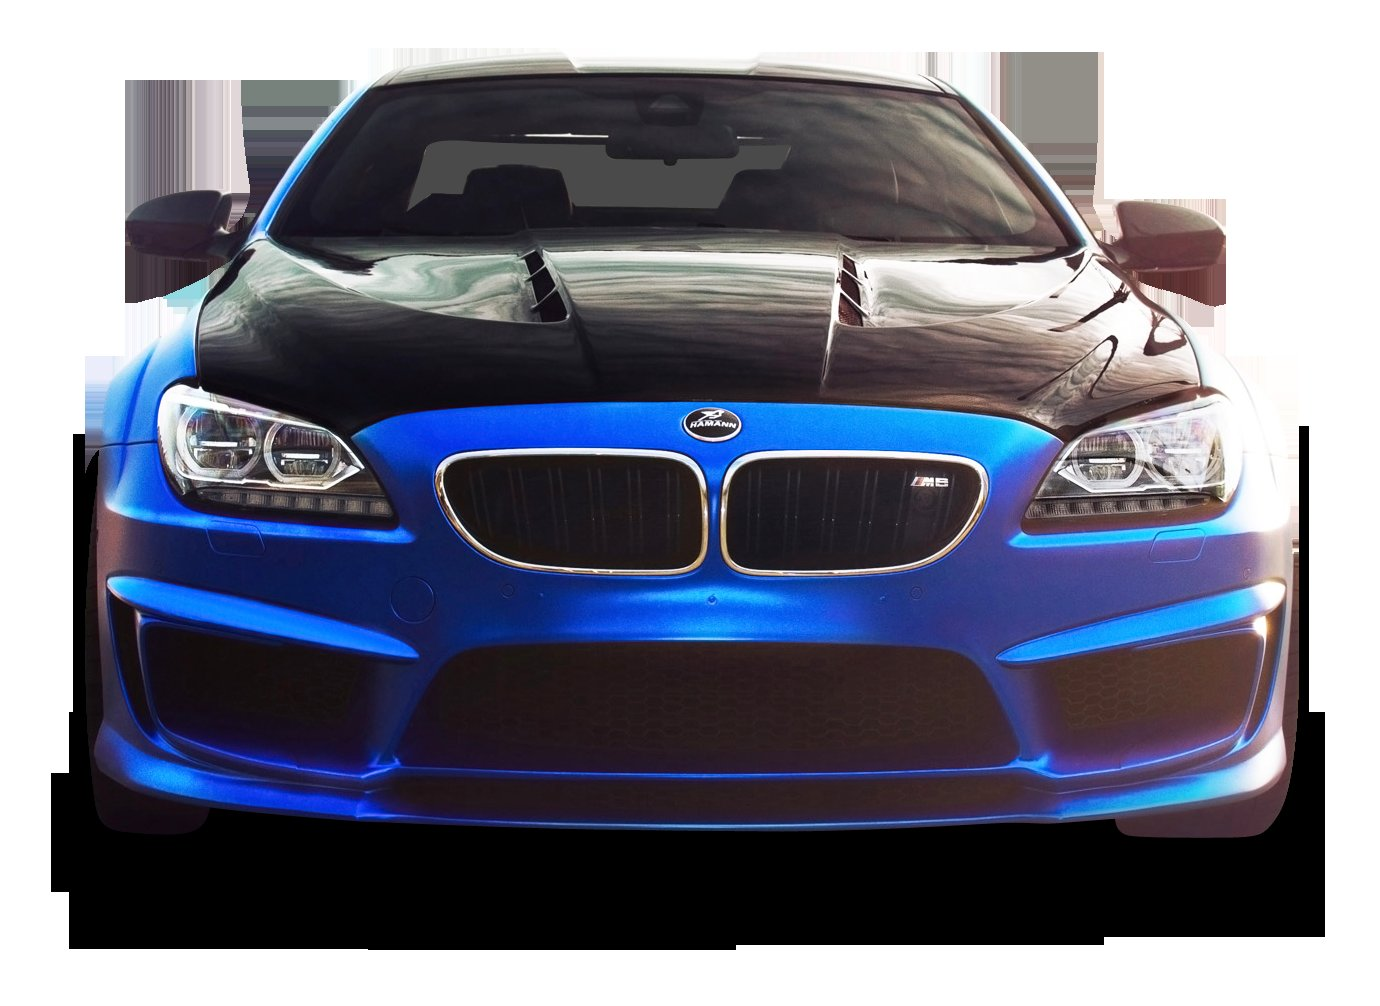 Latest Bmw M6 Blue Car Png Image Pngpix Free Download